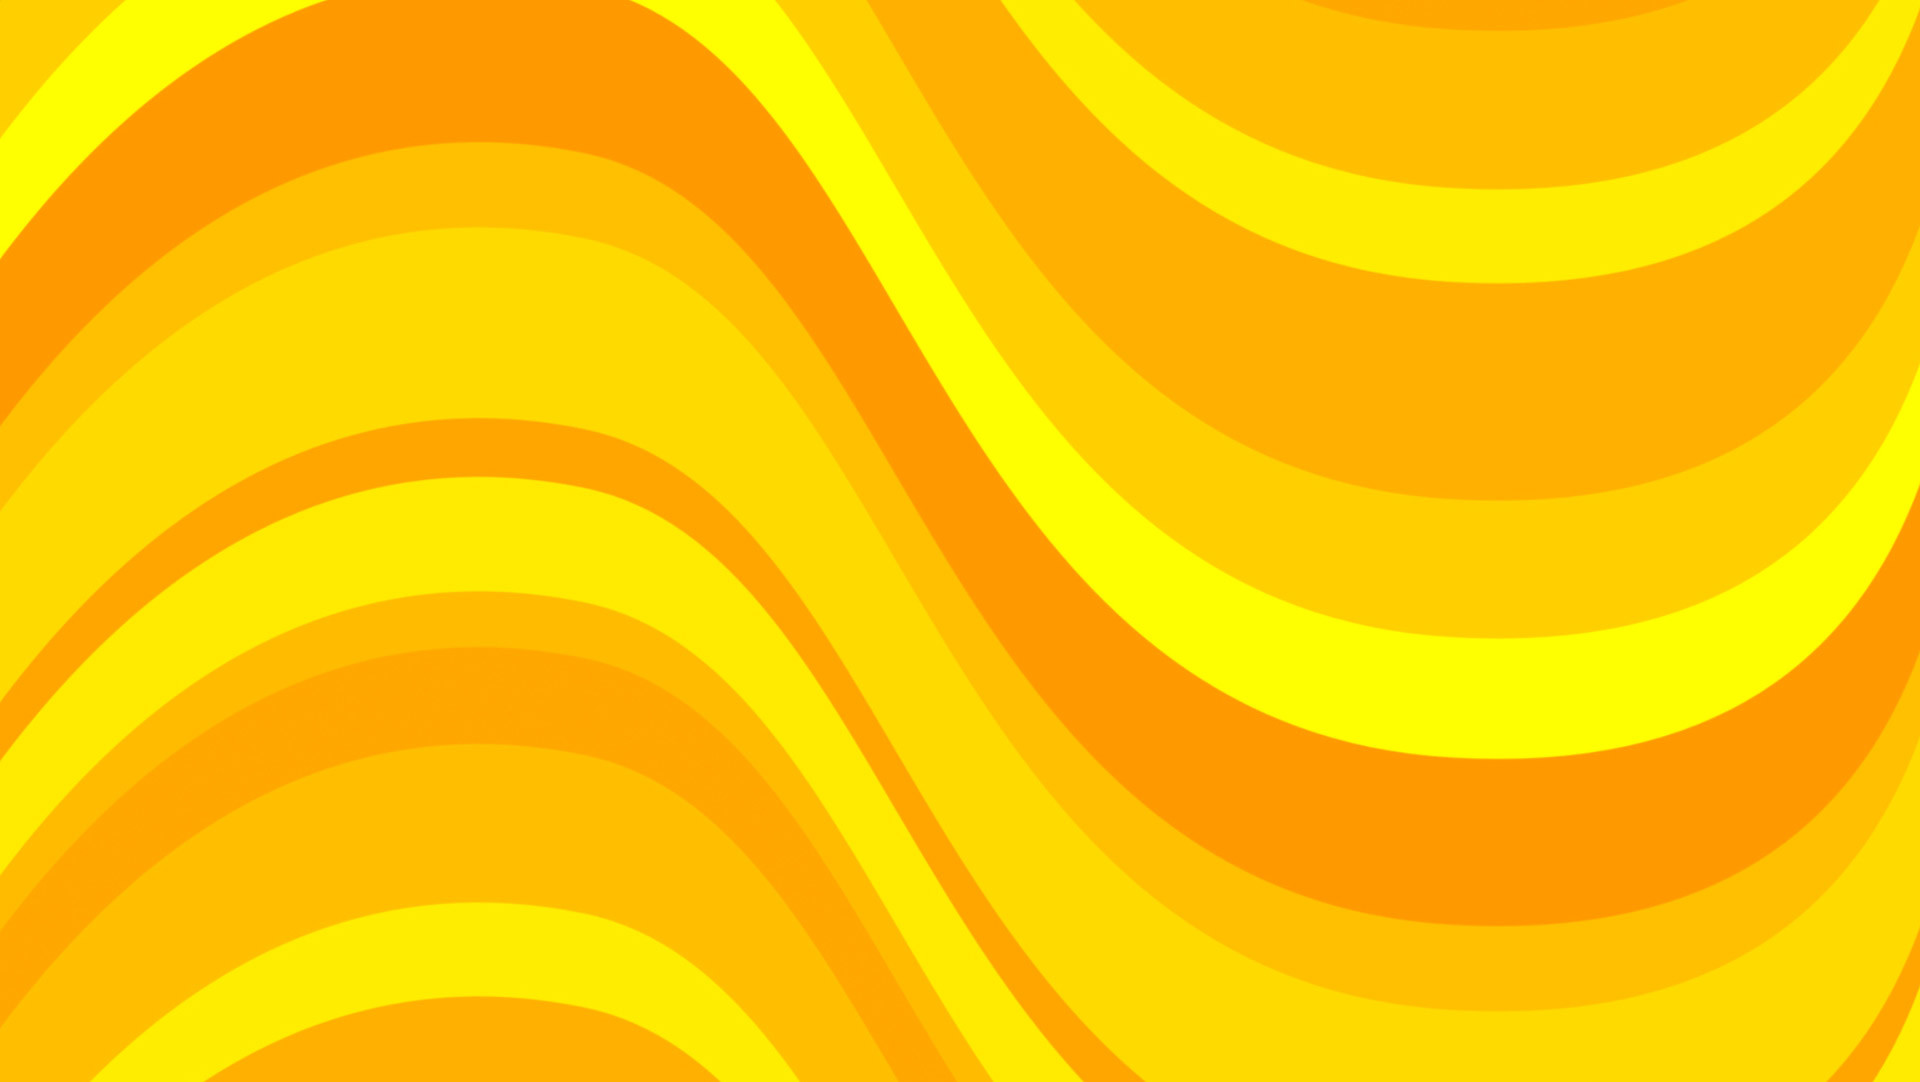 Yellow Background Wallpaper (48+ images)